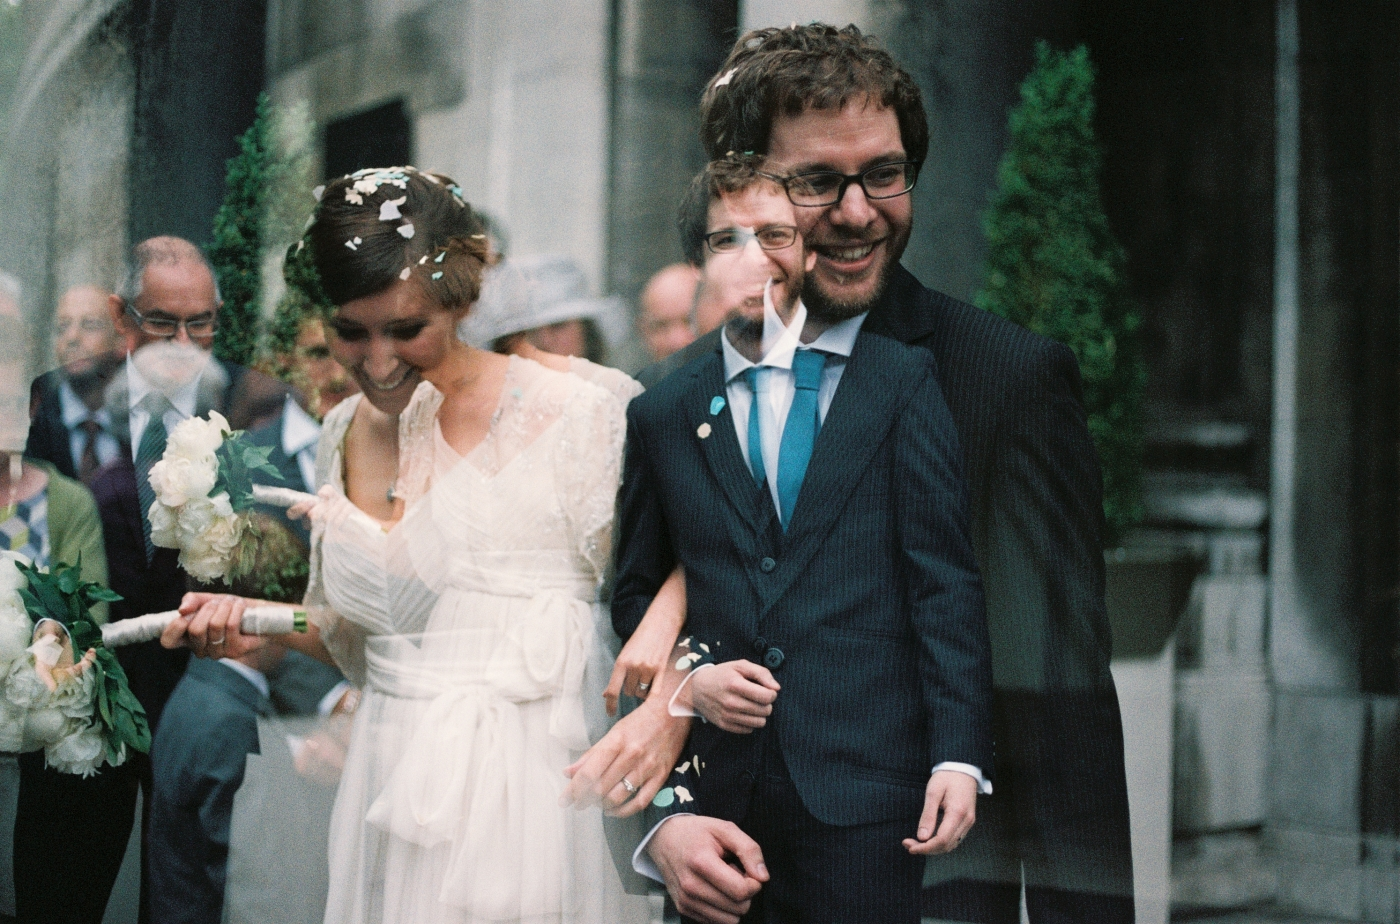 Tim and Hannah Got Married